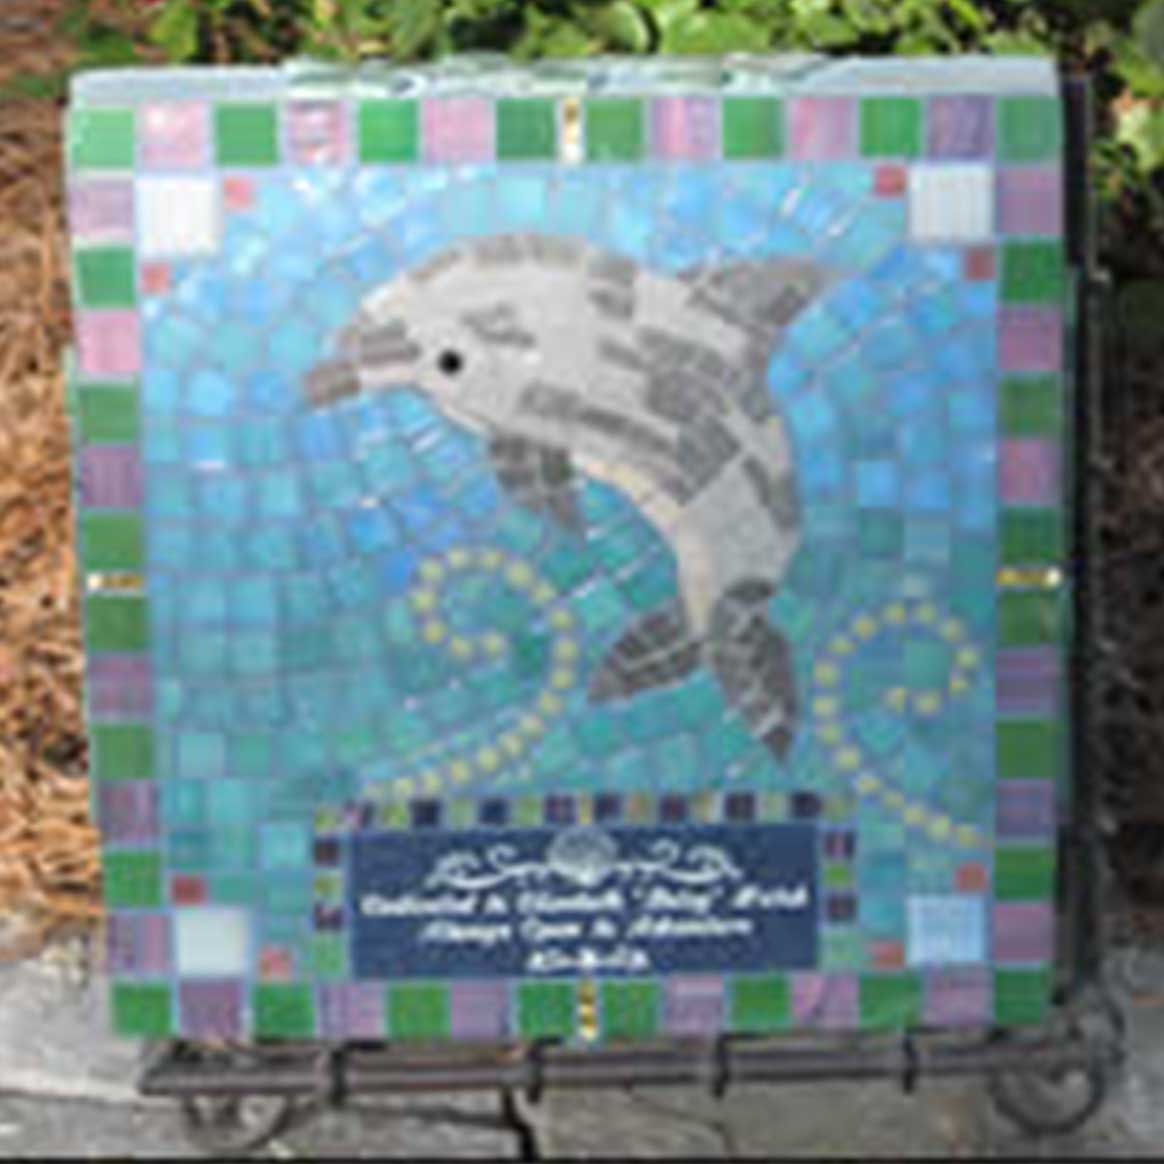 Mosaic Memorial Garden Art Stone of Betsy's Dolphin by Water's End Studio Artist Linda Solby